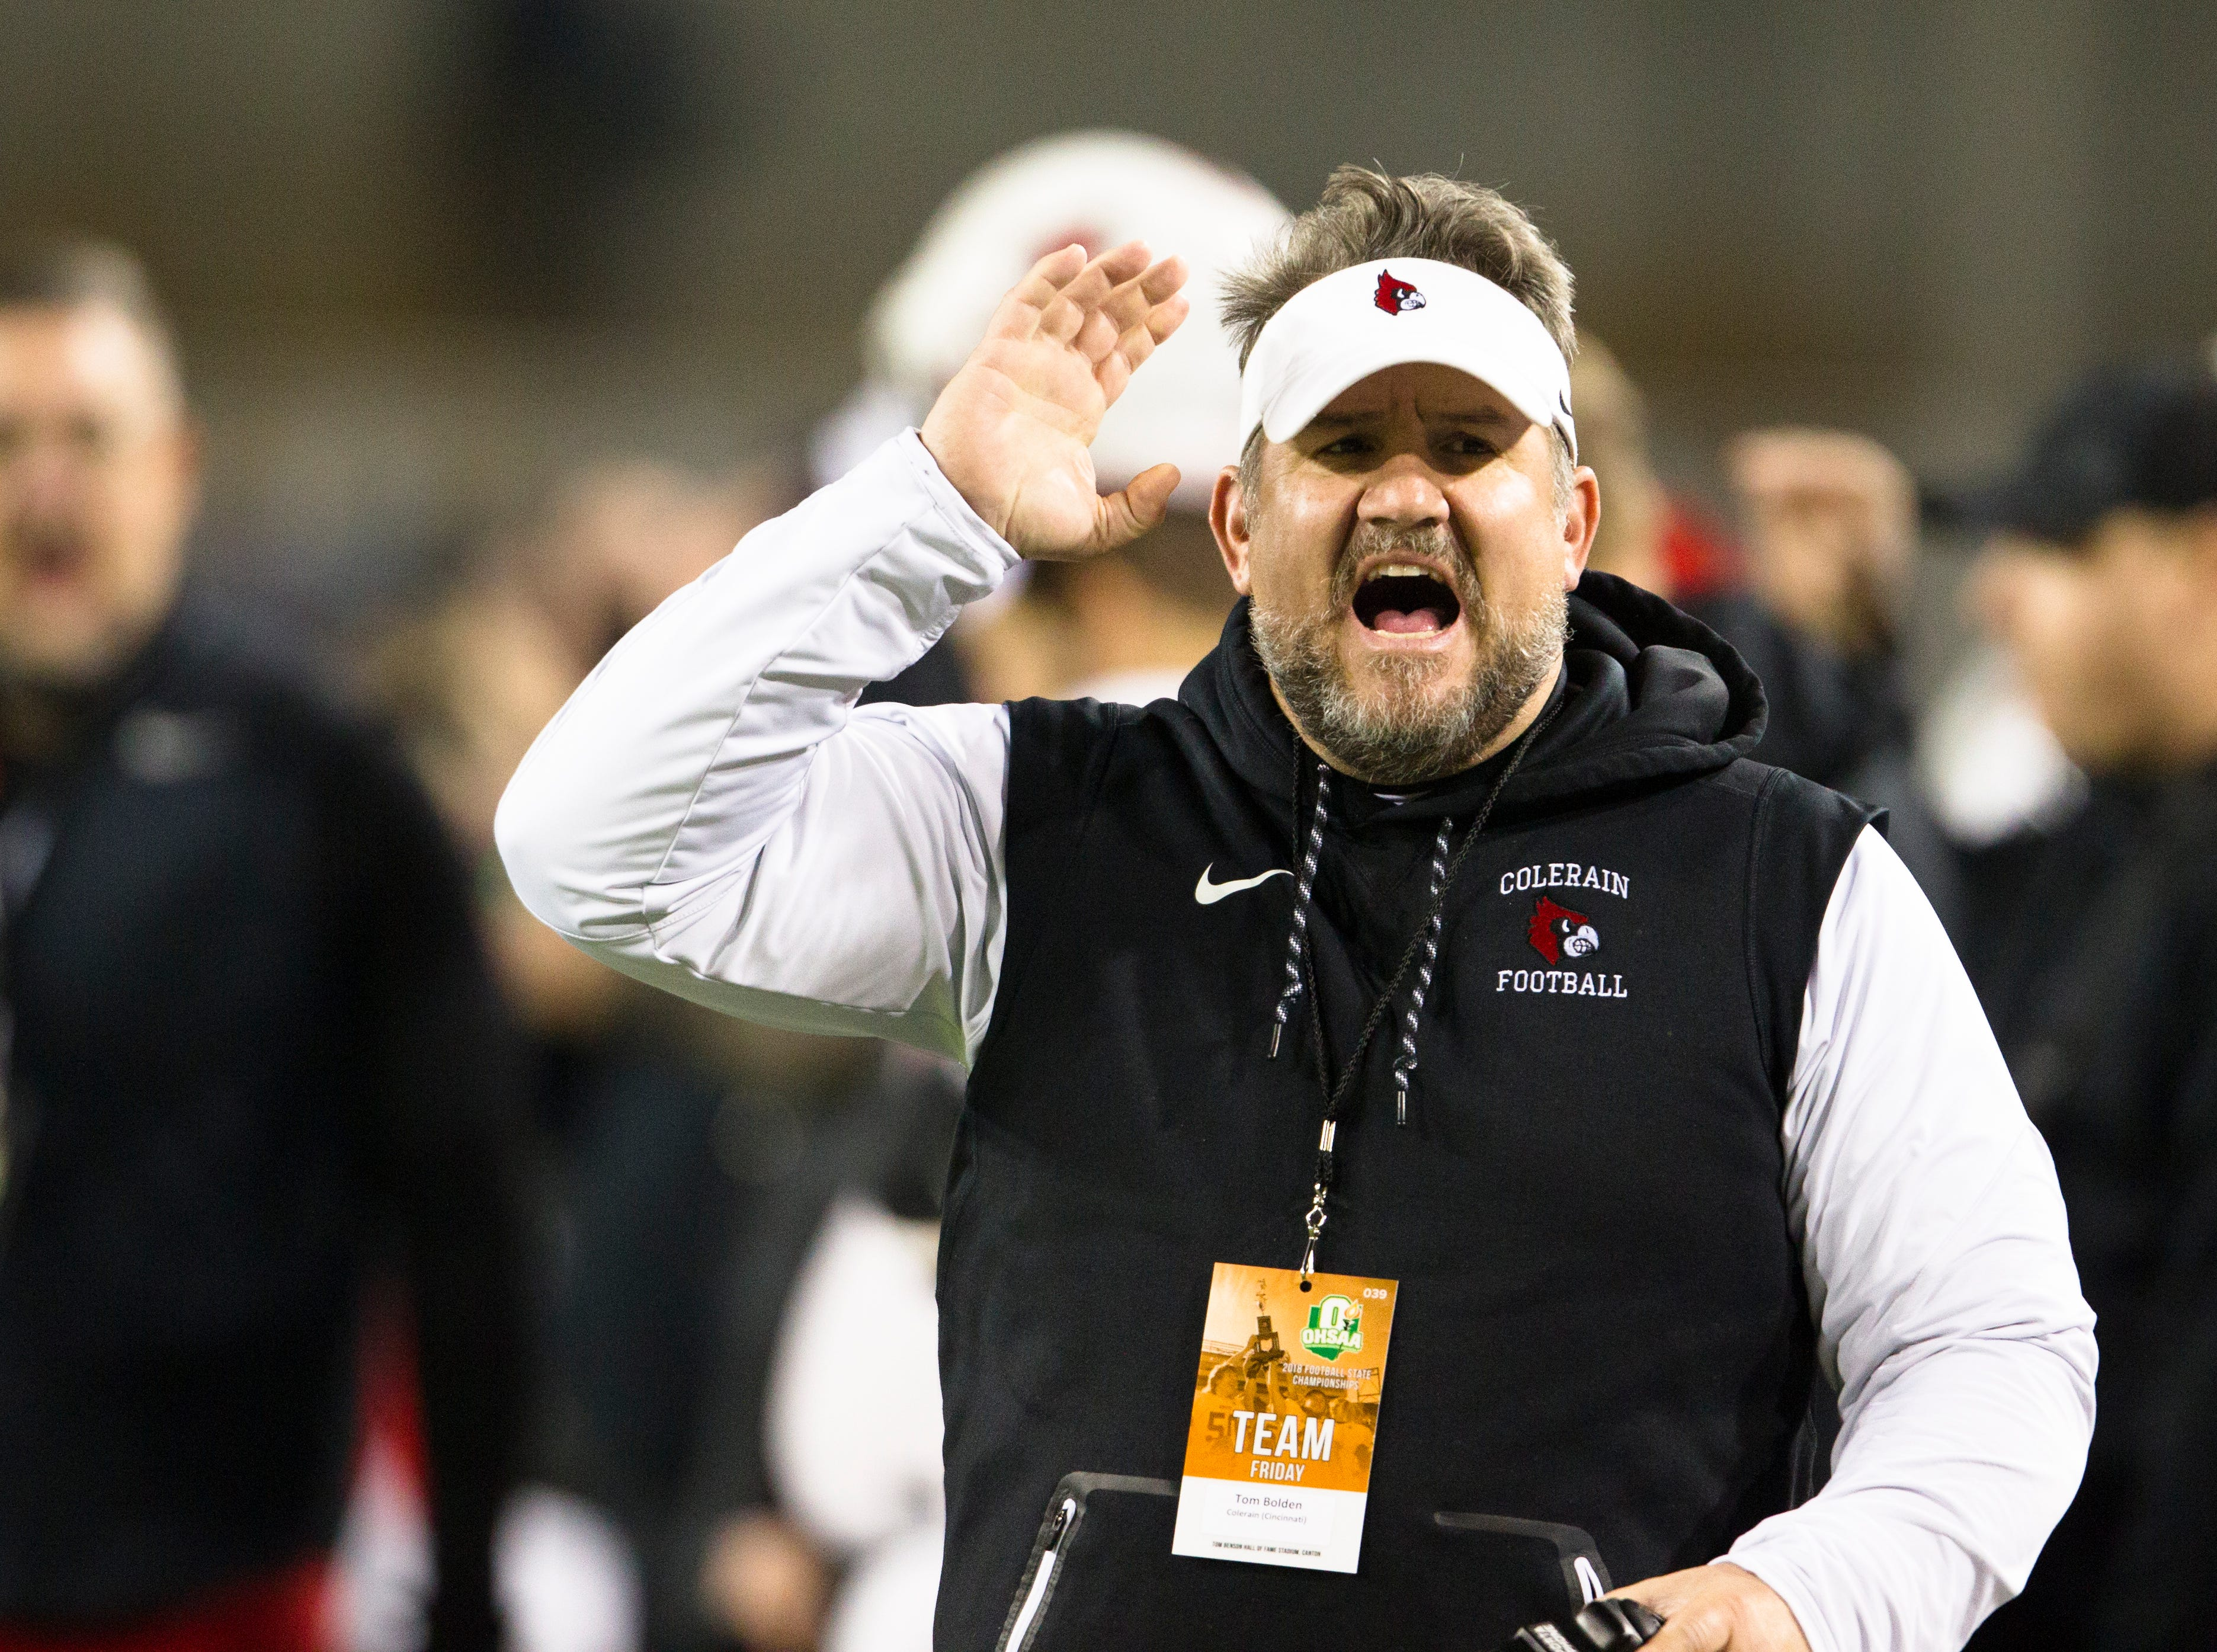 Colerain's Tom Bolden screams during the first half of the OHSAA Div. I State Championship football game between St. Edwards and Colerain on Friday, Nov. 30, 2018, at Tom Benson Stadium in Canton.